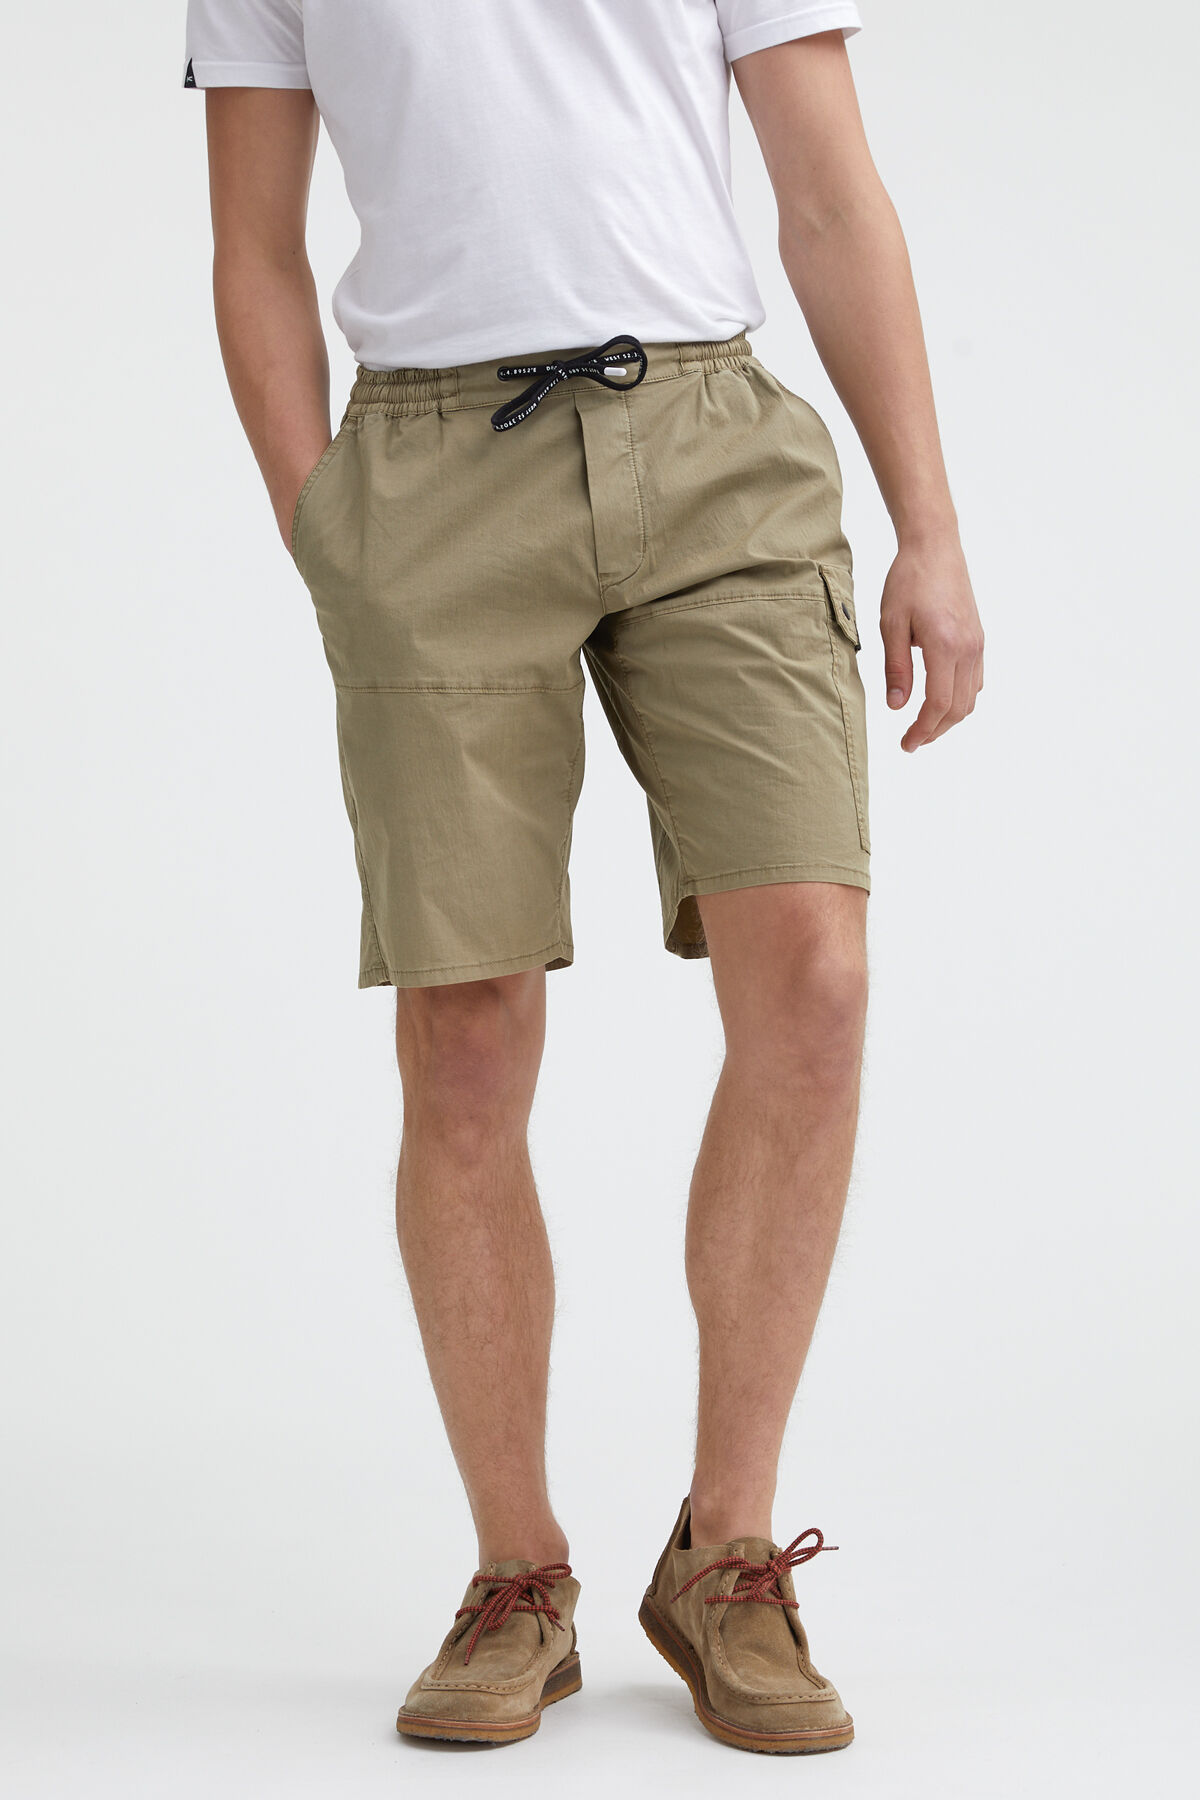 KINETIC CARGO SHORT Garment Dyed - Tapered Fit